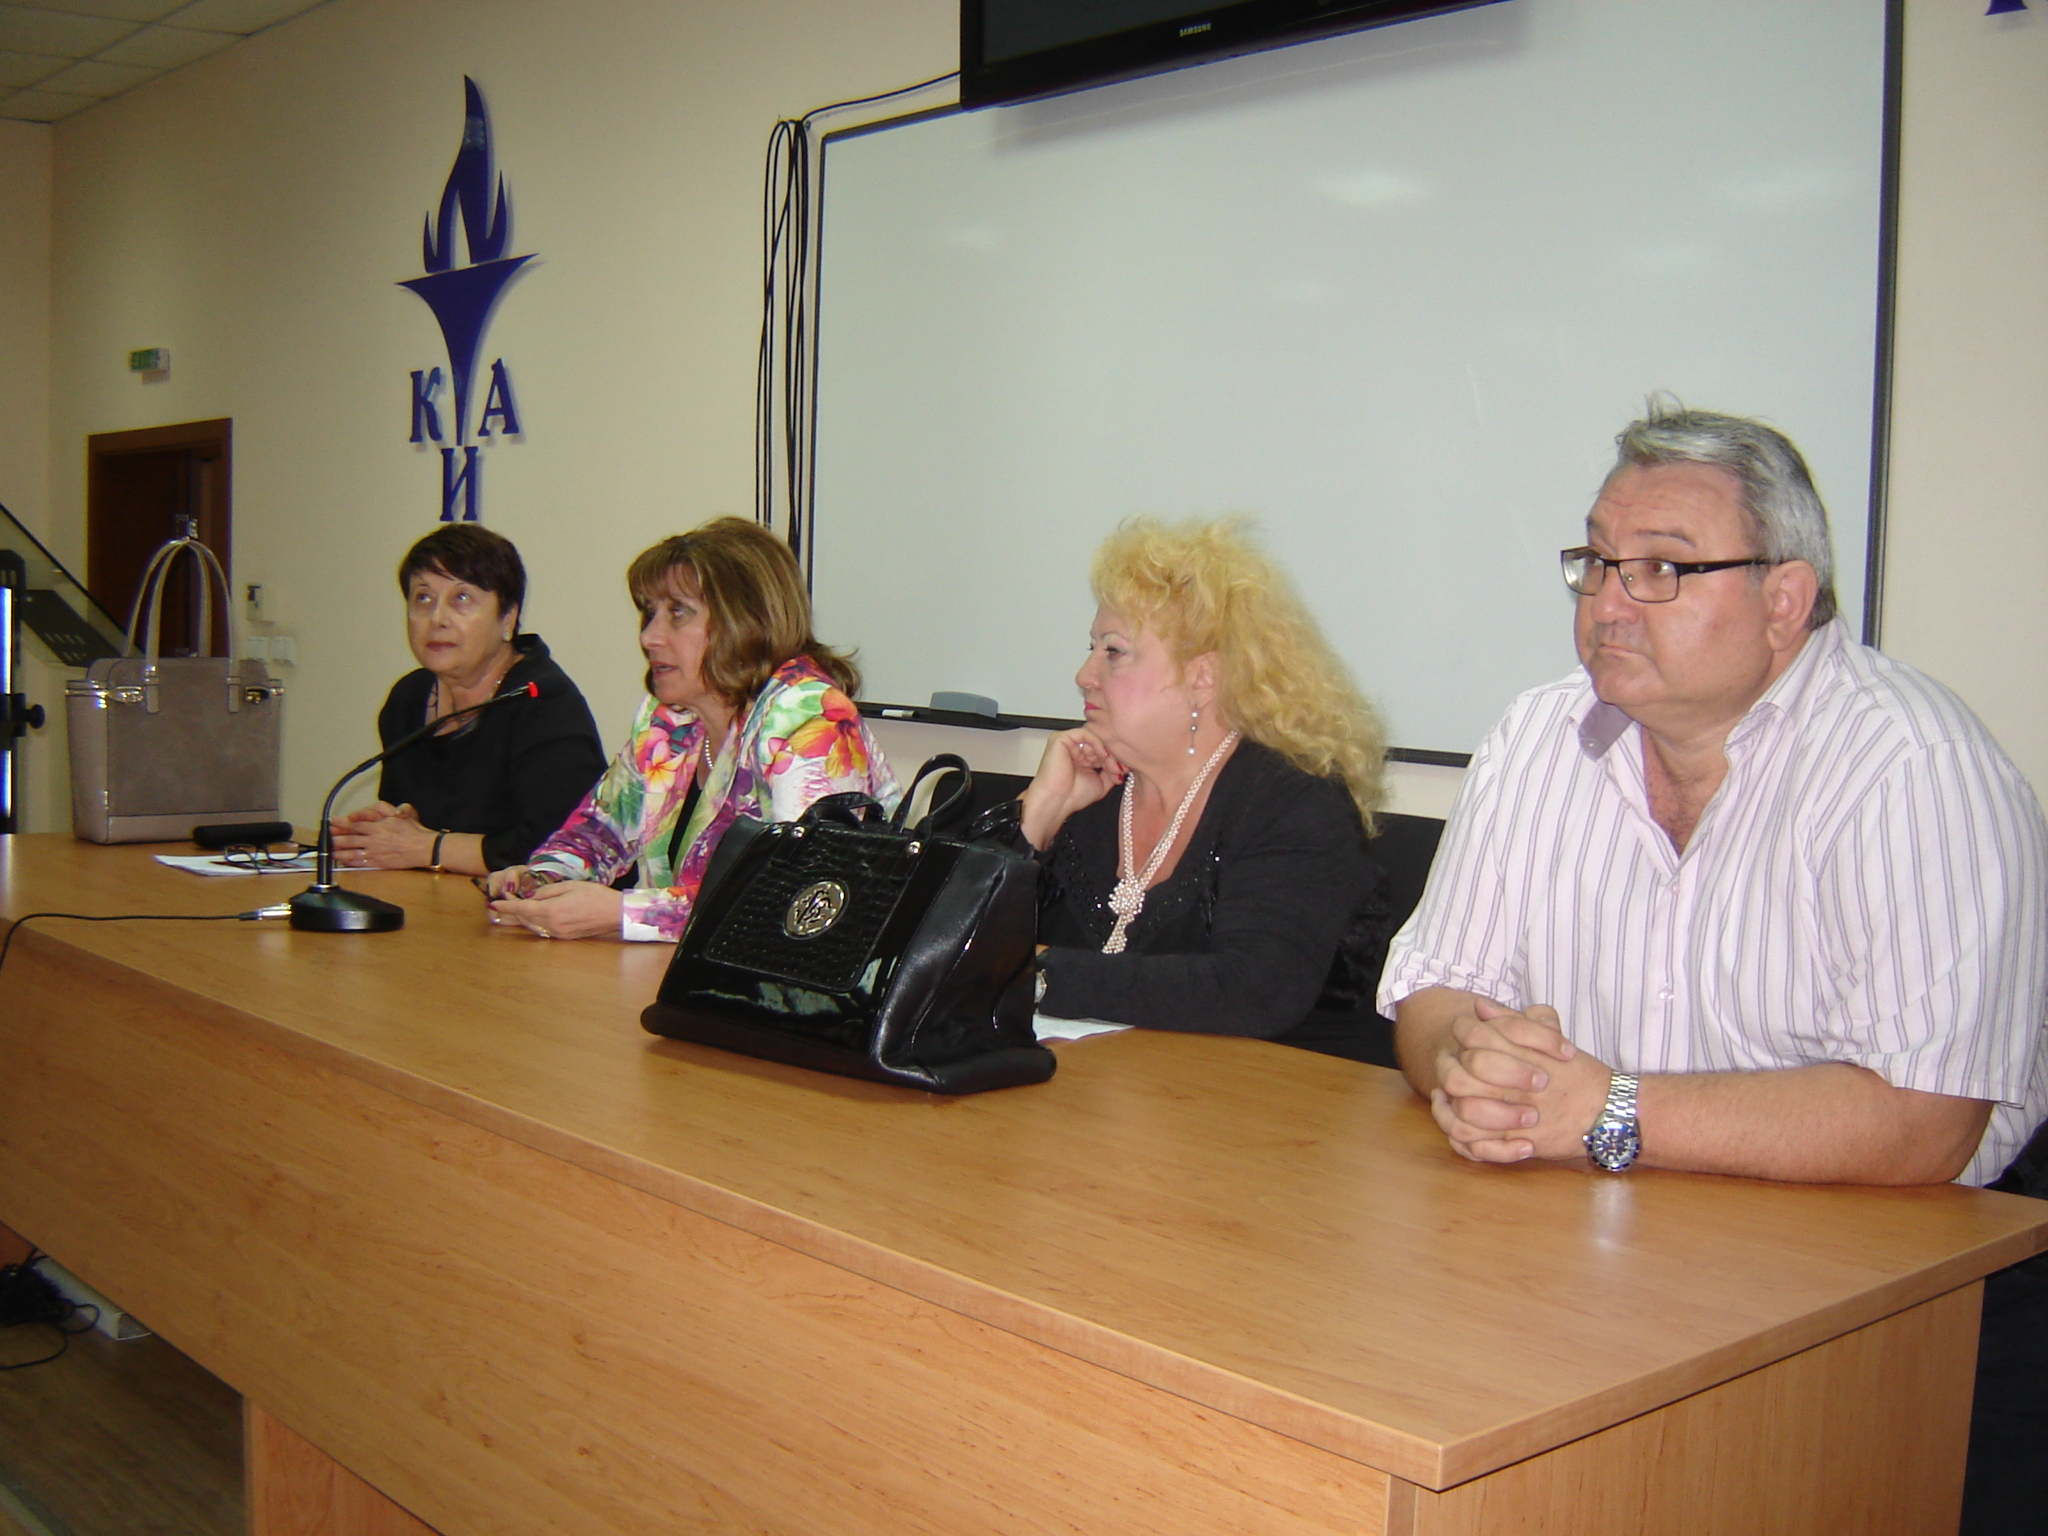 Prof. Dr. Veselka Pavlova, Vice Rector in the Education for EQD of Master of Science and Distance Learning greeted the students and wished them success. She outlined that both professional fields of Economics and Administration and Management had reached the highest entry level and the highest grades had been valid as for the regular as also for the distance form of education. You have chosen the most prestigious university, assured the students the Vice Rector.